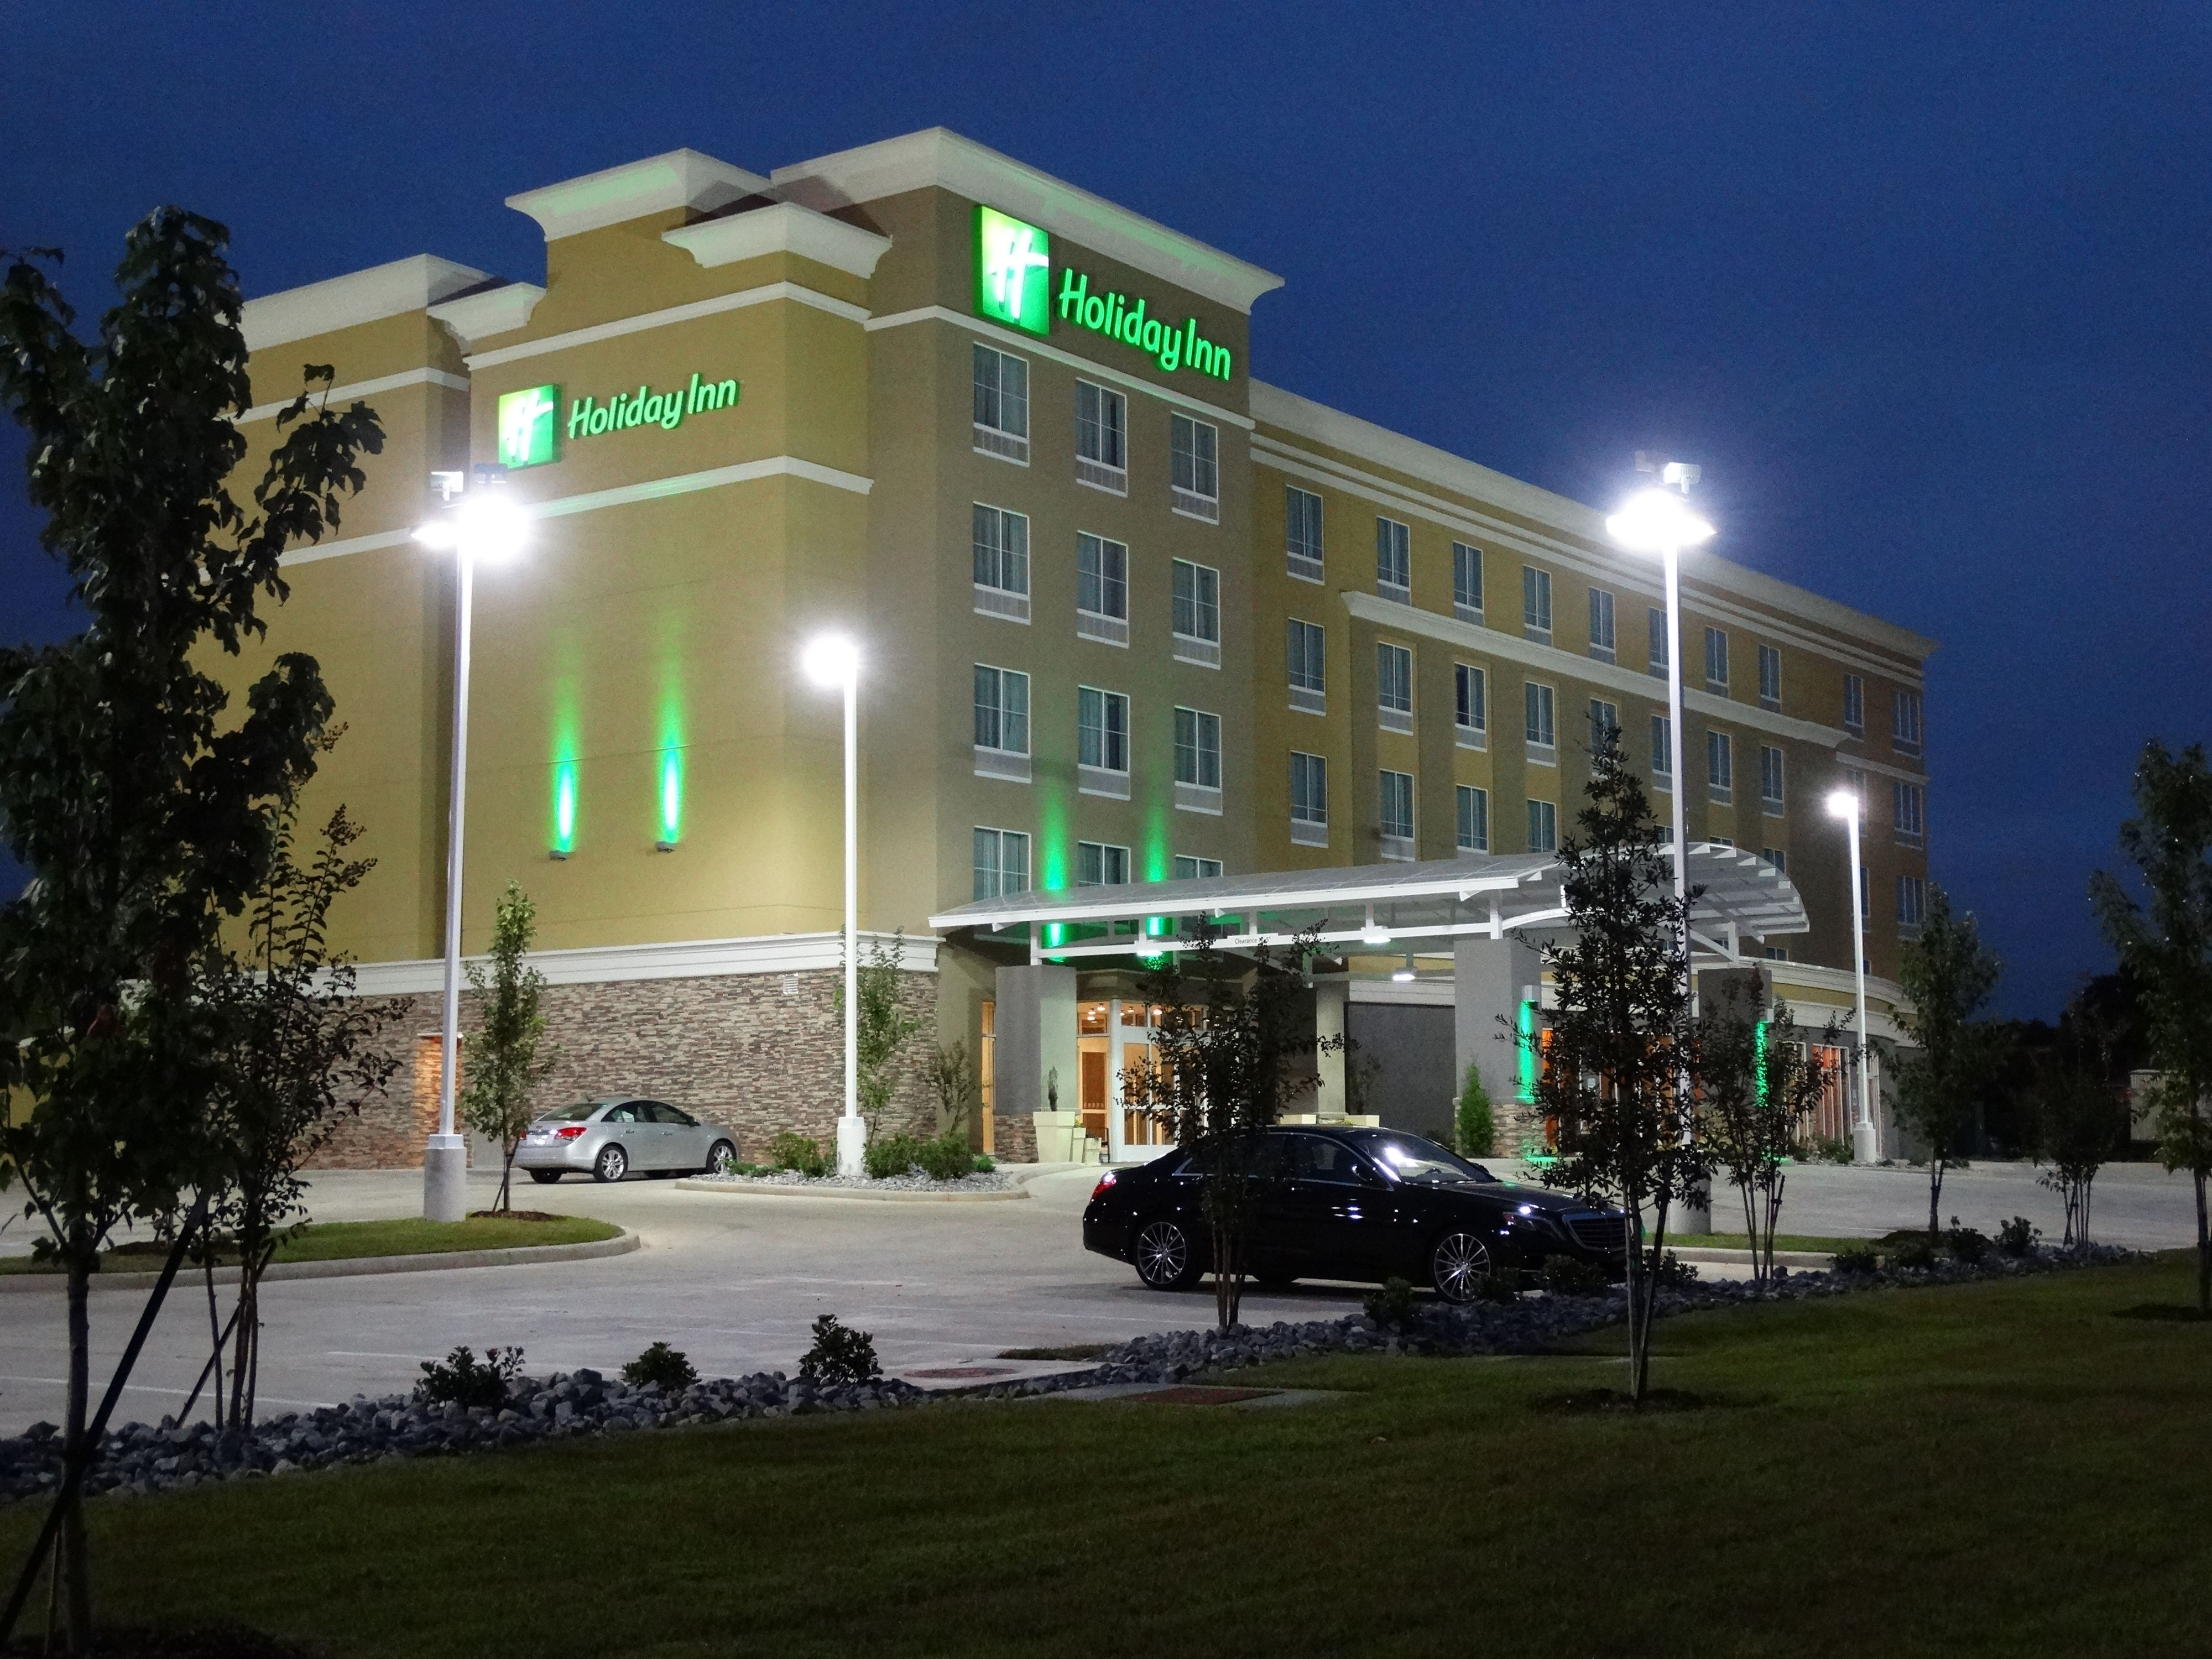 Holiday Inn Hotel & Suites Council Bluffs-I-29 image 2